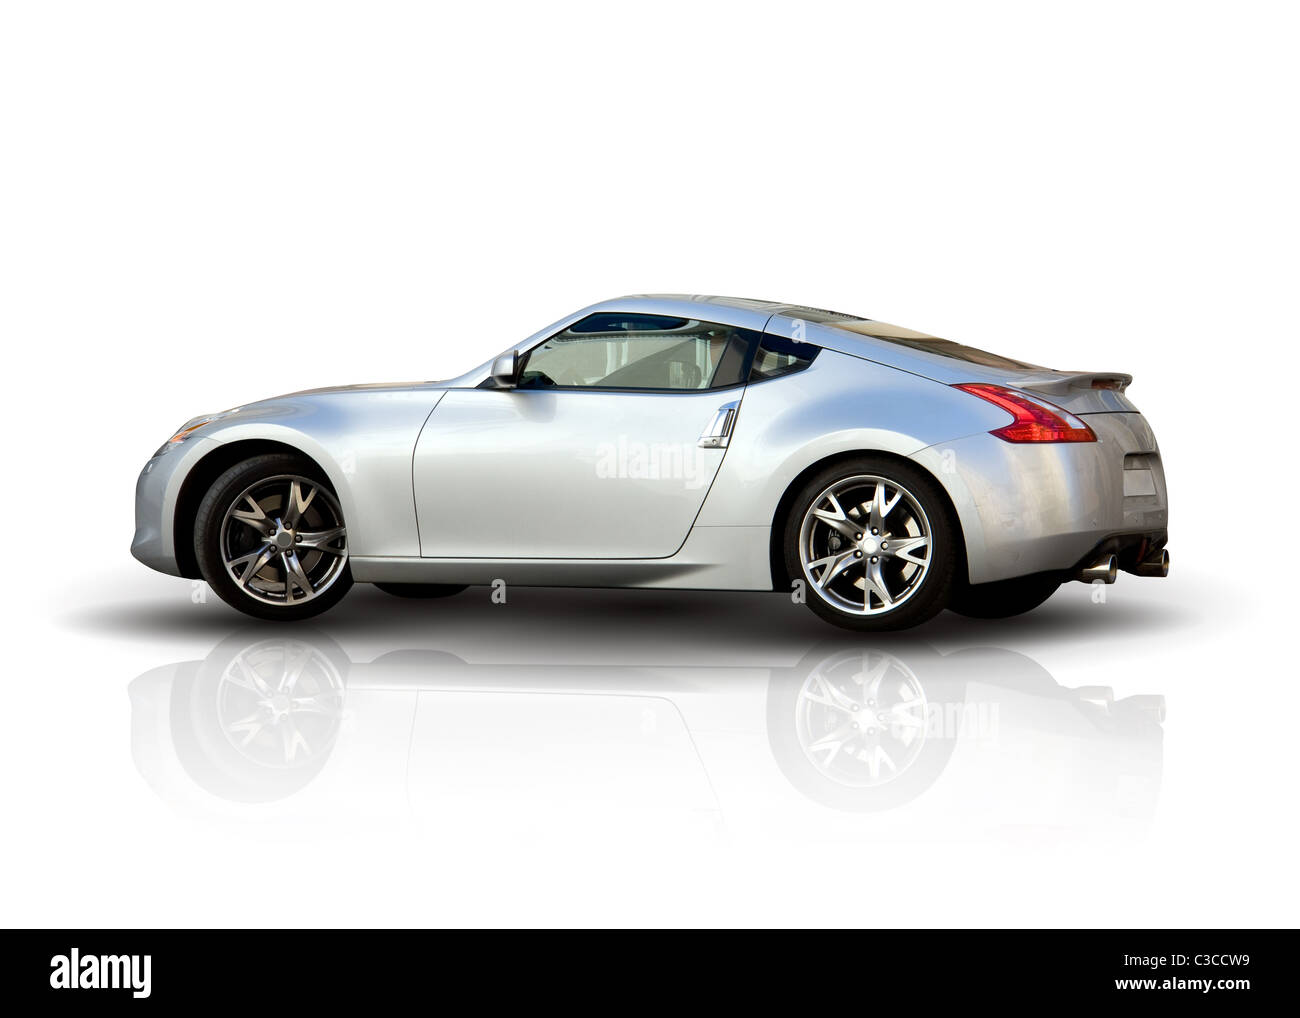 Moderne Sportwagen - Isolated over White Background Stockbild